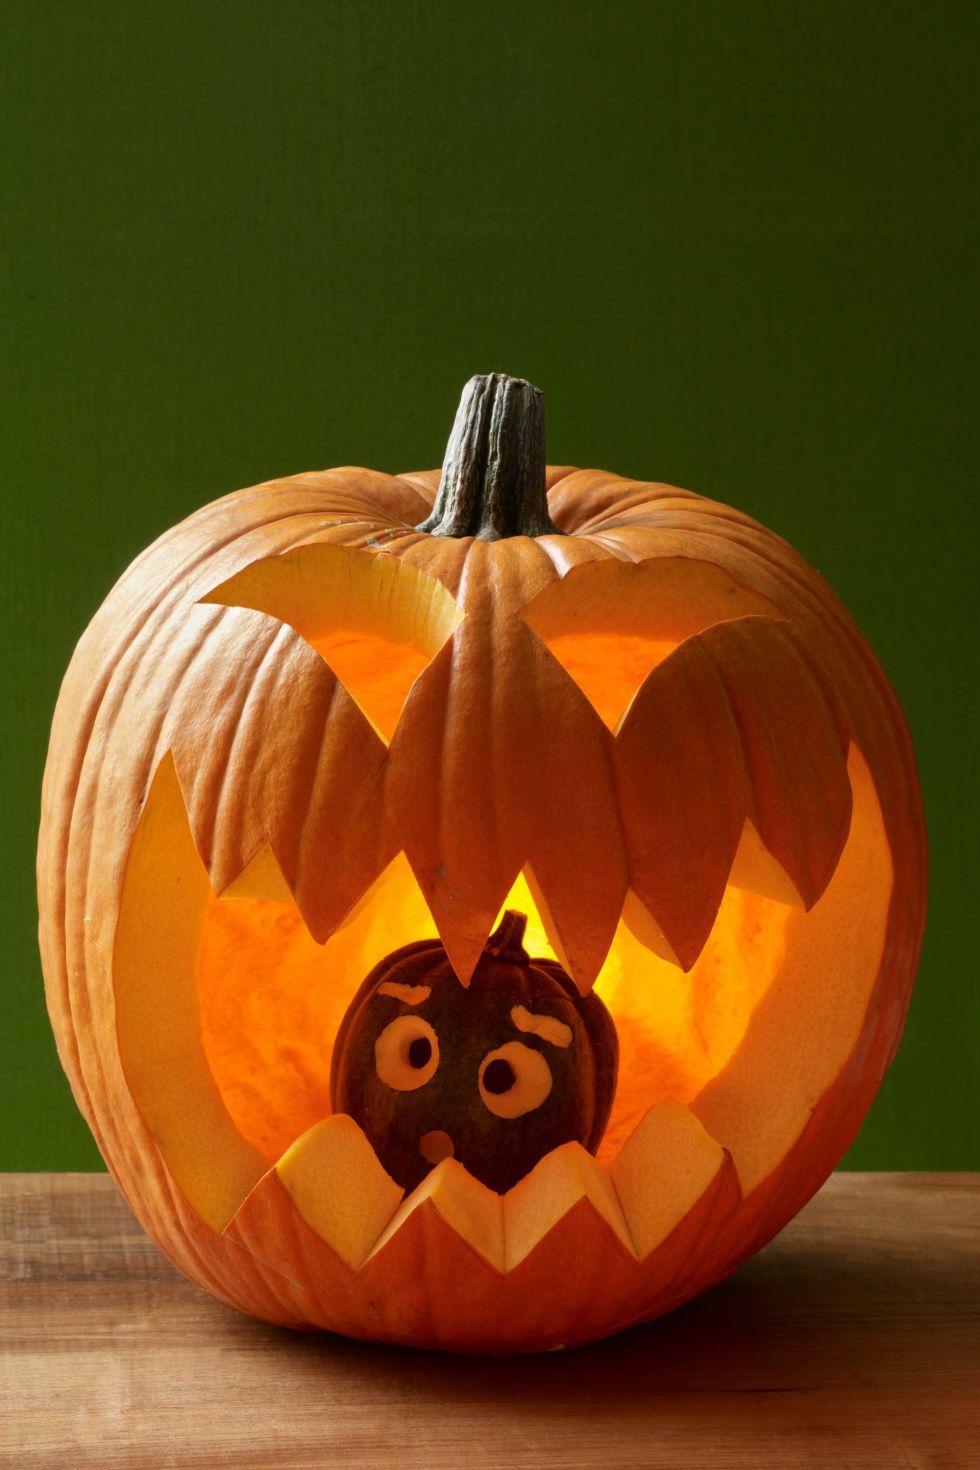 Halloween Pumpkin Ideas 2017